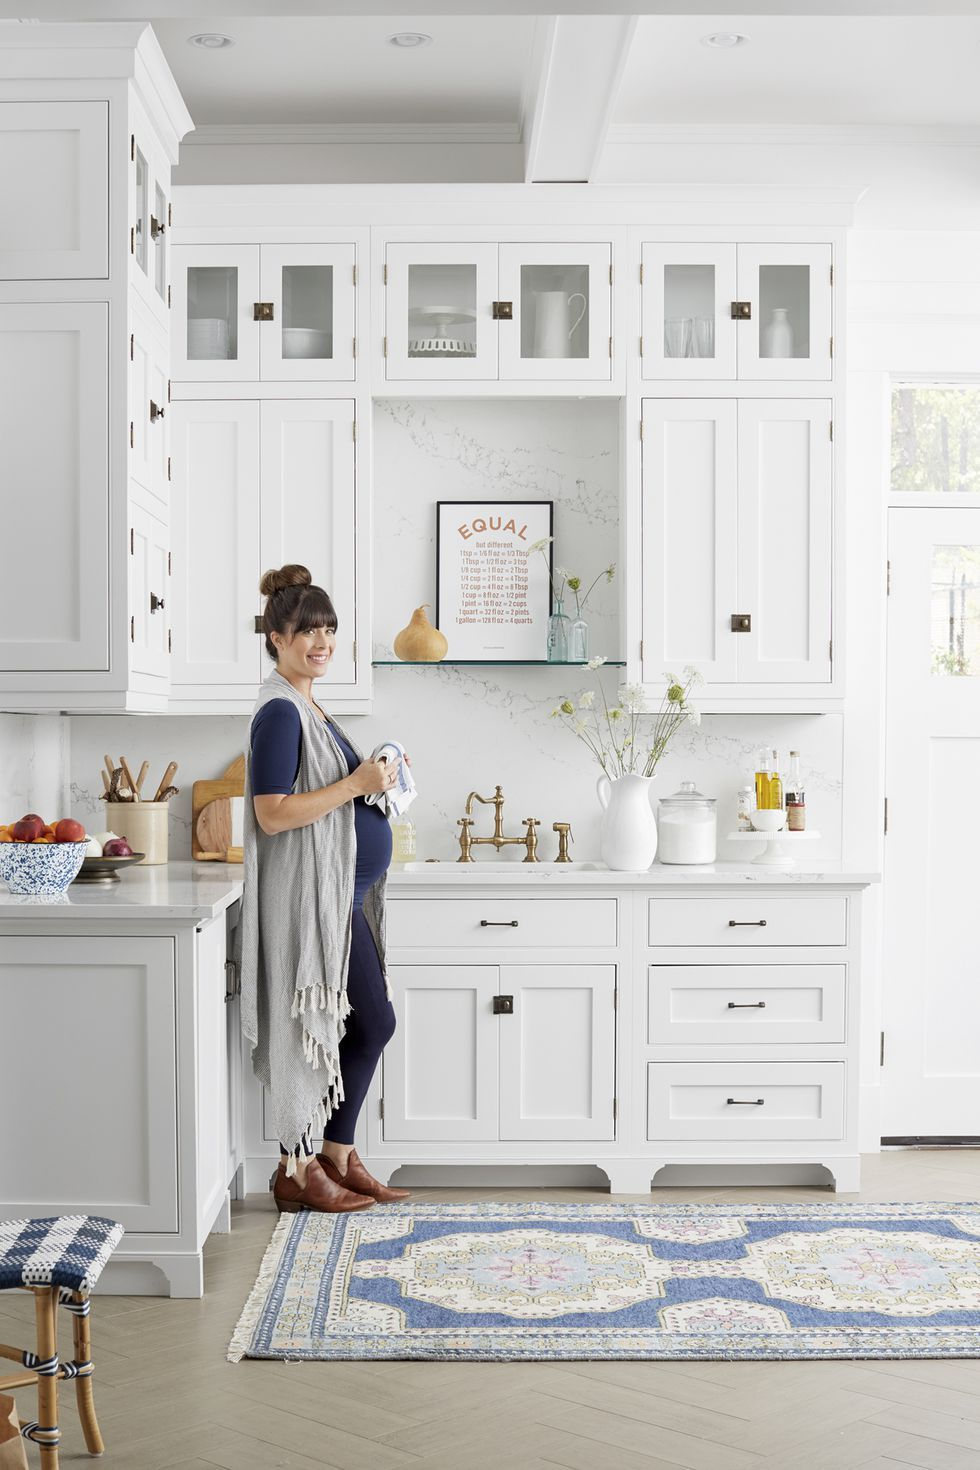 White country kitchen cabinets Bianco Antico Country Kitchen Ideas White Country Living Magazine 100 Kitchen Design Ideas Pictures Of Country Kitchen Decorating